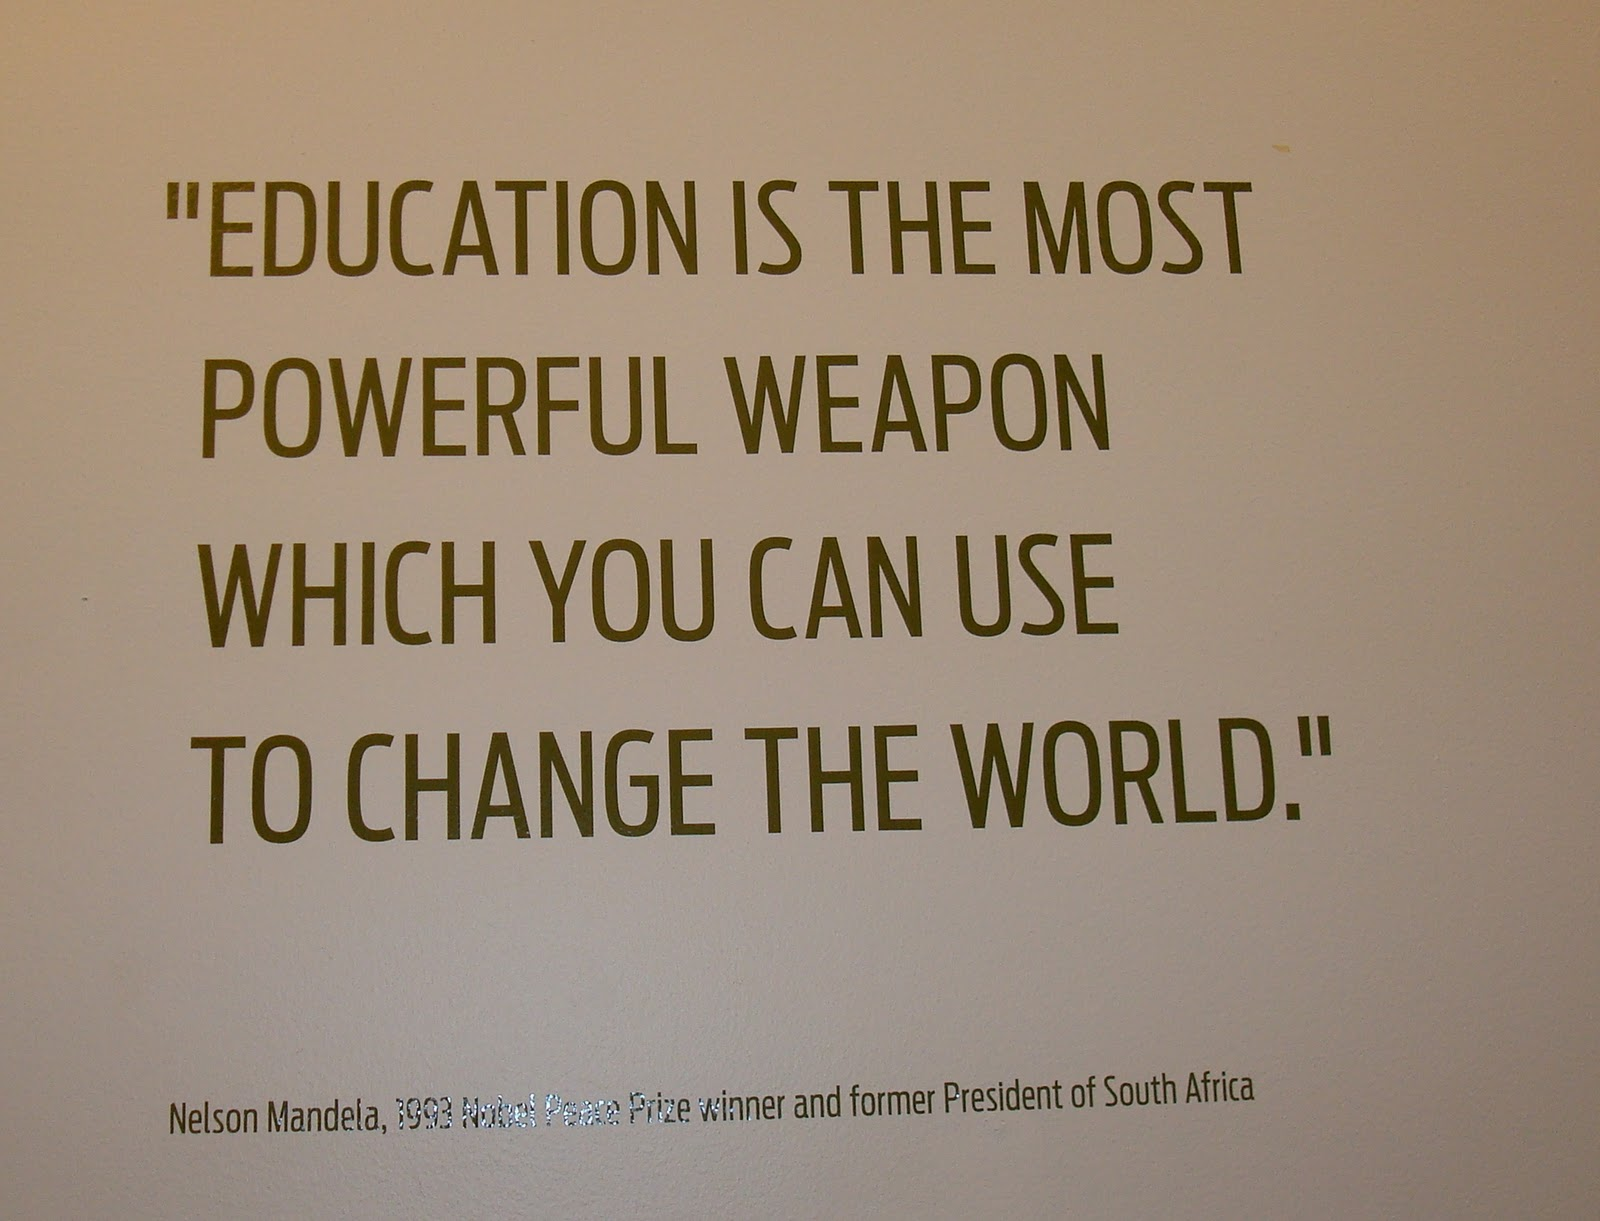 Nelson-Mandela-quotes-about-using-education-to-change-the-world-powerful-weapon-positive-inspirational-and-motivational.